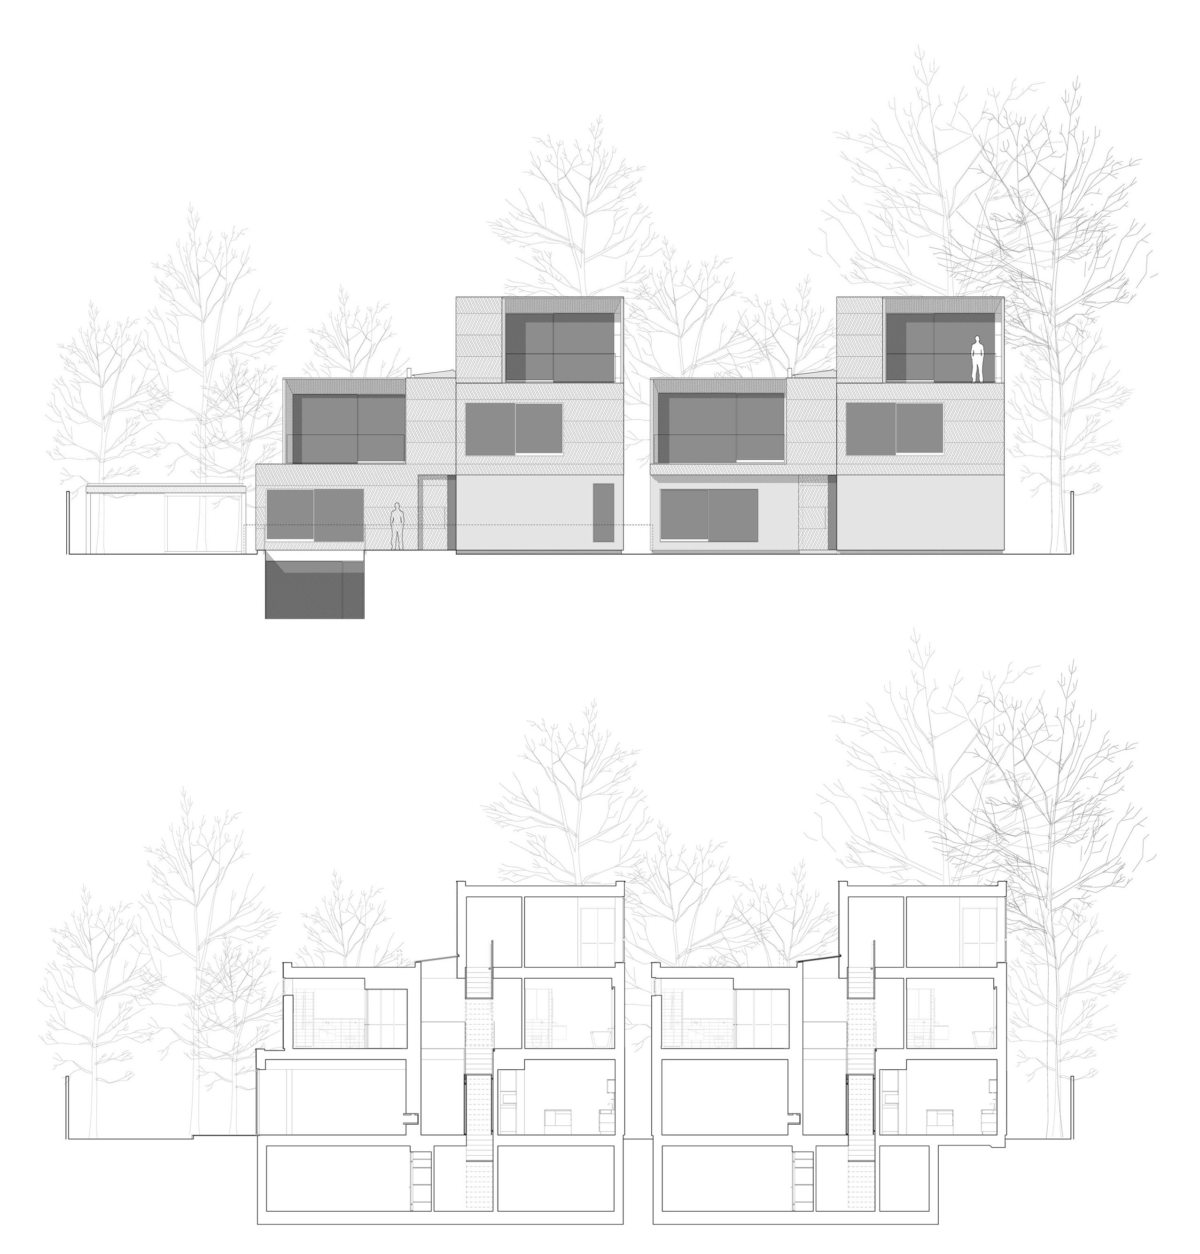 Alison Brooks Architects _ Herringbone Houses _ Sections Elevations 1